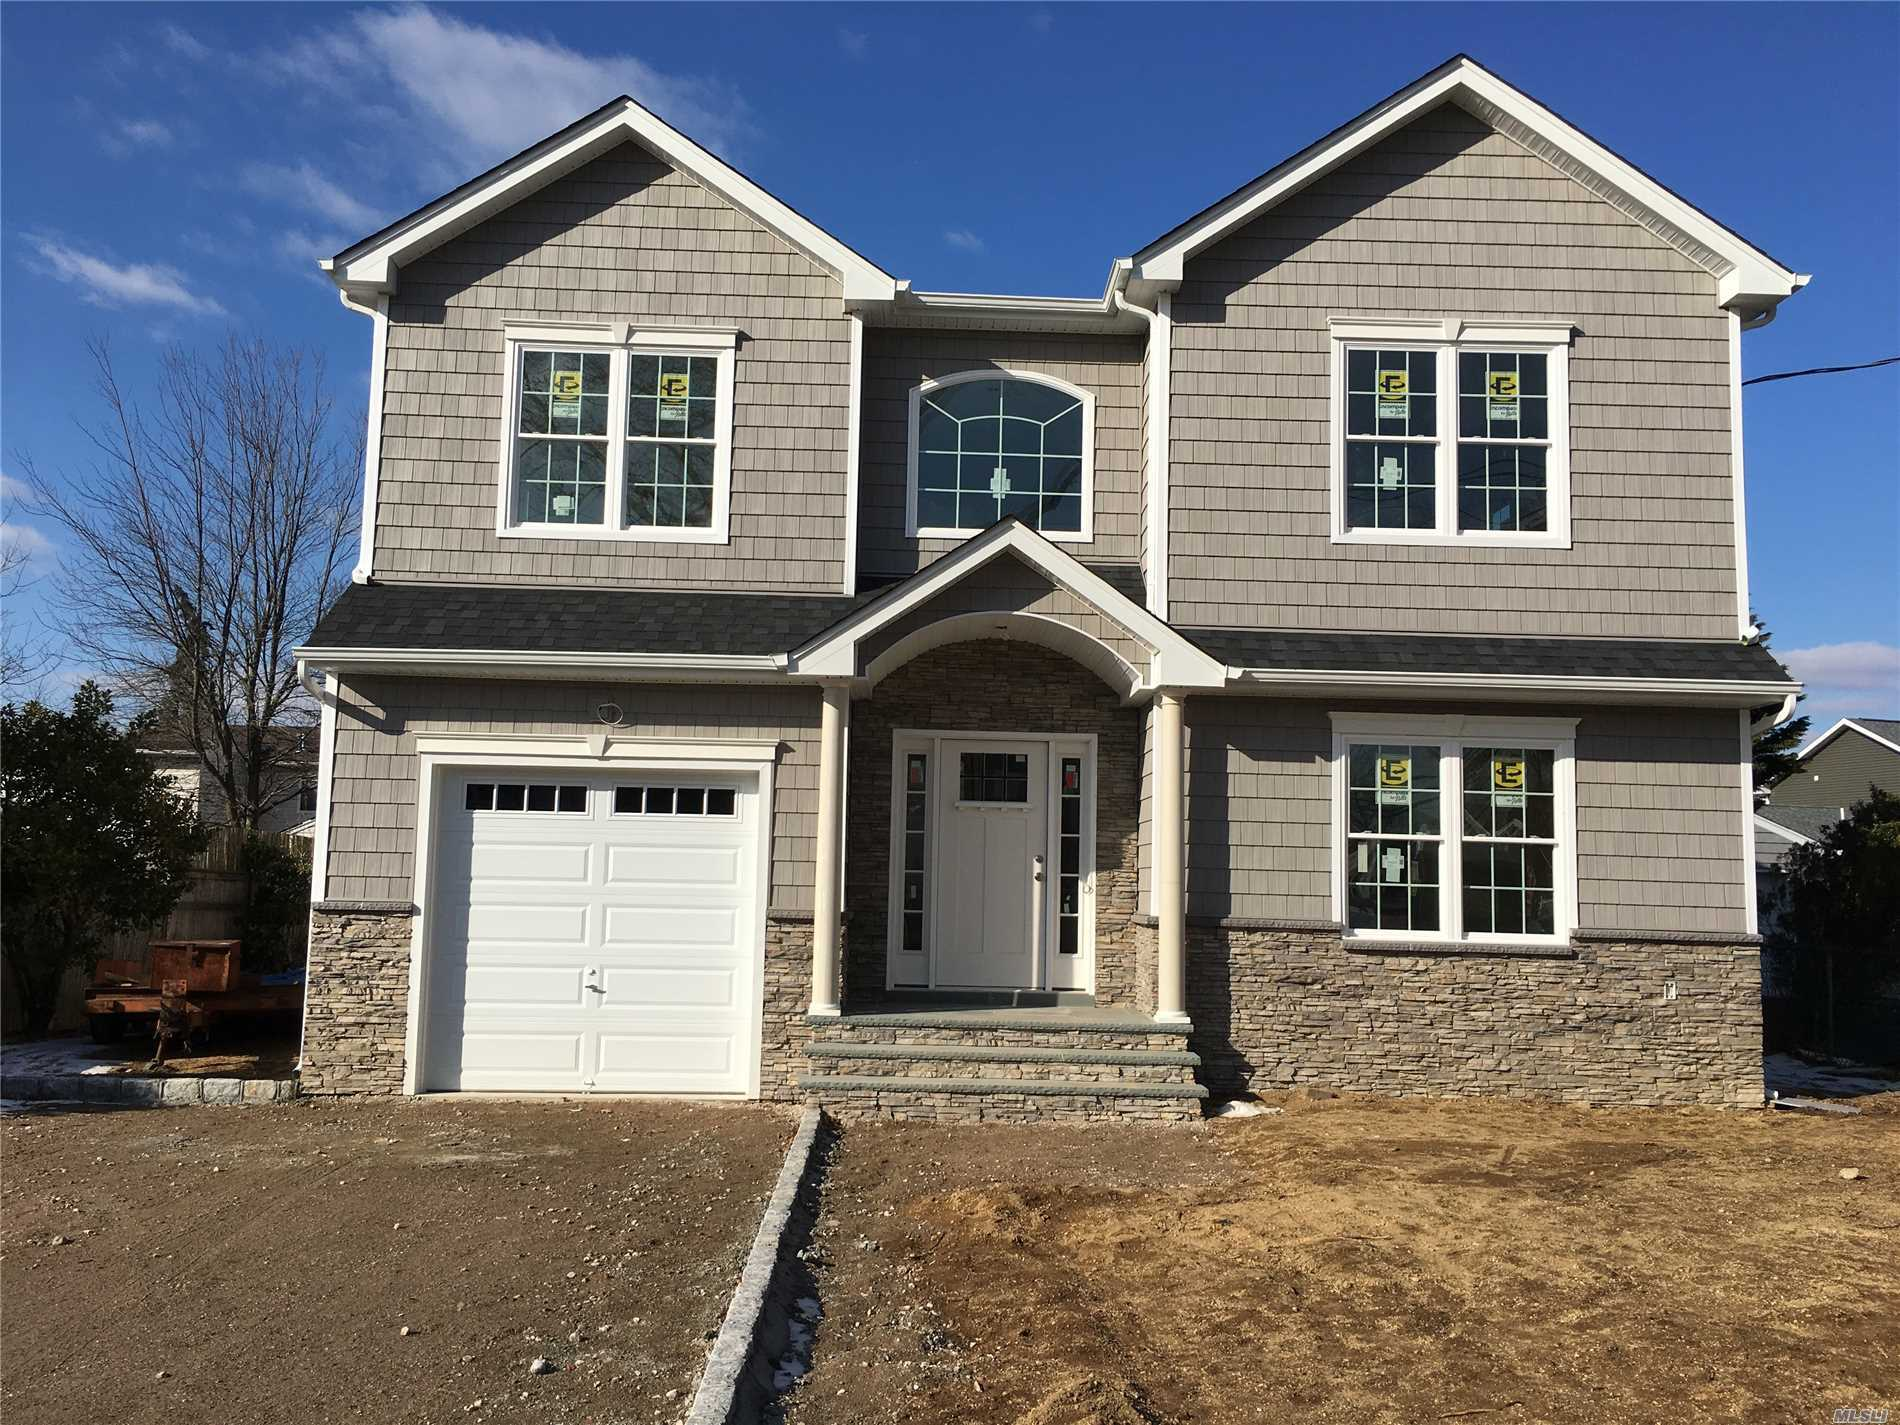 Exceptional Builder To Detail, Brand New Colonial, 4Br, 2.5Ba, Stunning 9' Ff Ceilings, Extra Wide Staircase, Lr, Formal Dr, Eik Granite Island, Half Bath W/Carrera Marble W/Ss Appliances, Den, W/Gas F/P, Magnificent Crown Molding & Wainscoting On F/F Leading Up To The 2nd Floor.Master Suite W/Tray Ceilings/Huge Full Ba With Shower Stall & Jacuzzi Tub.3 Nice Size Br, Full Granite Bath, 2nd Fl Laundry Room, 4 1/4' H/W Floors Throughout. Full Basement, 8'Ceilings, W/Ose, 8' Garage Dr, W/High Ceilings, Energy Star!